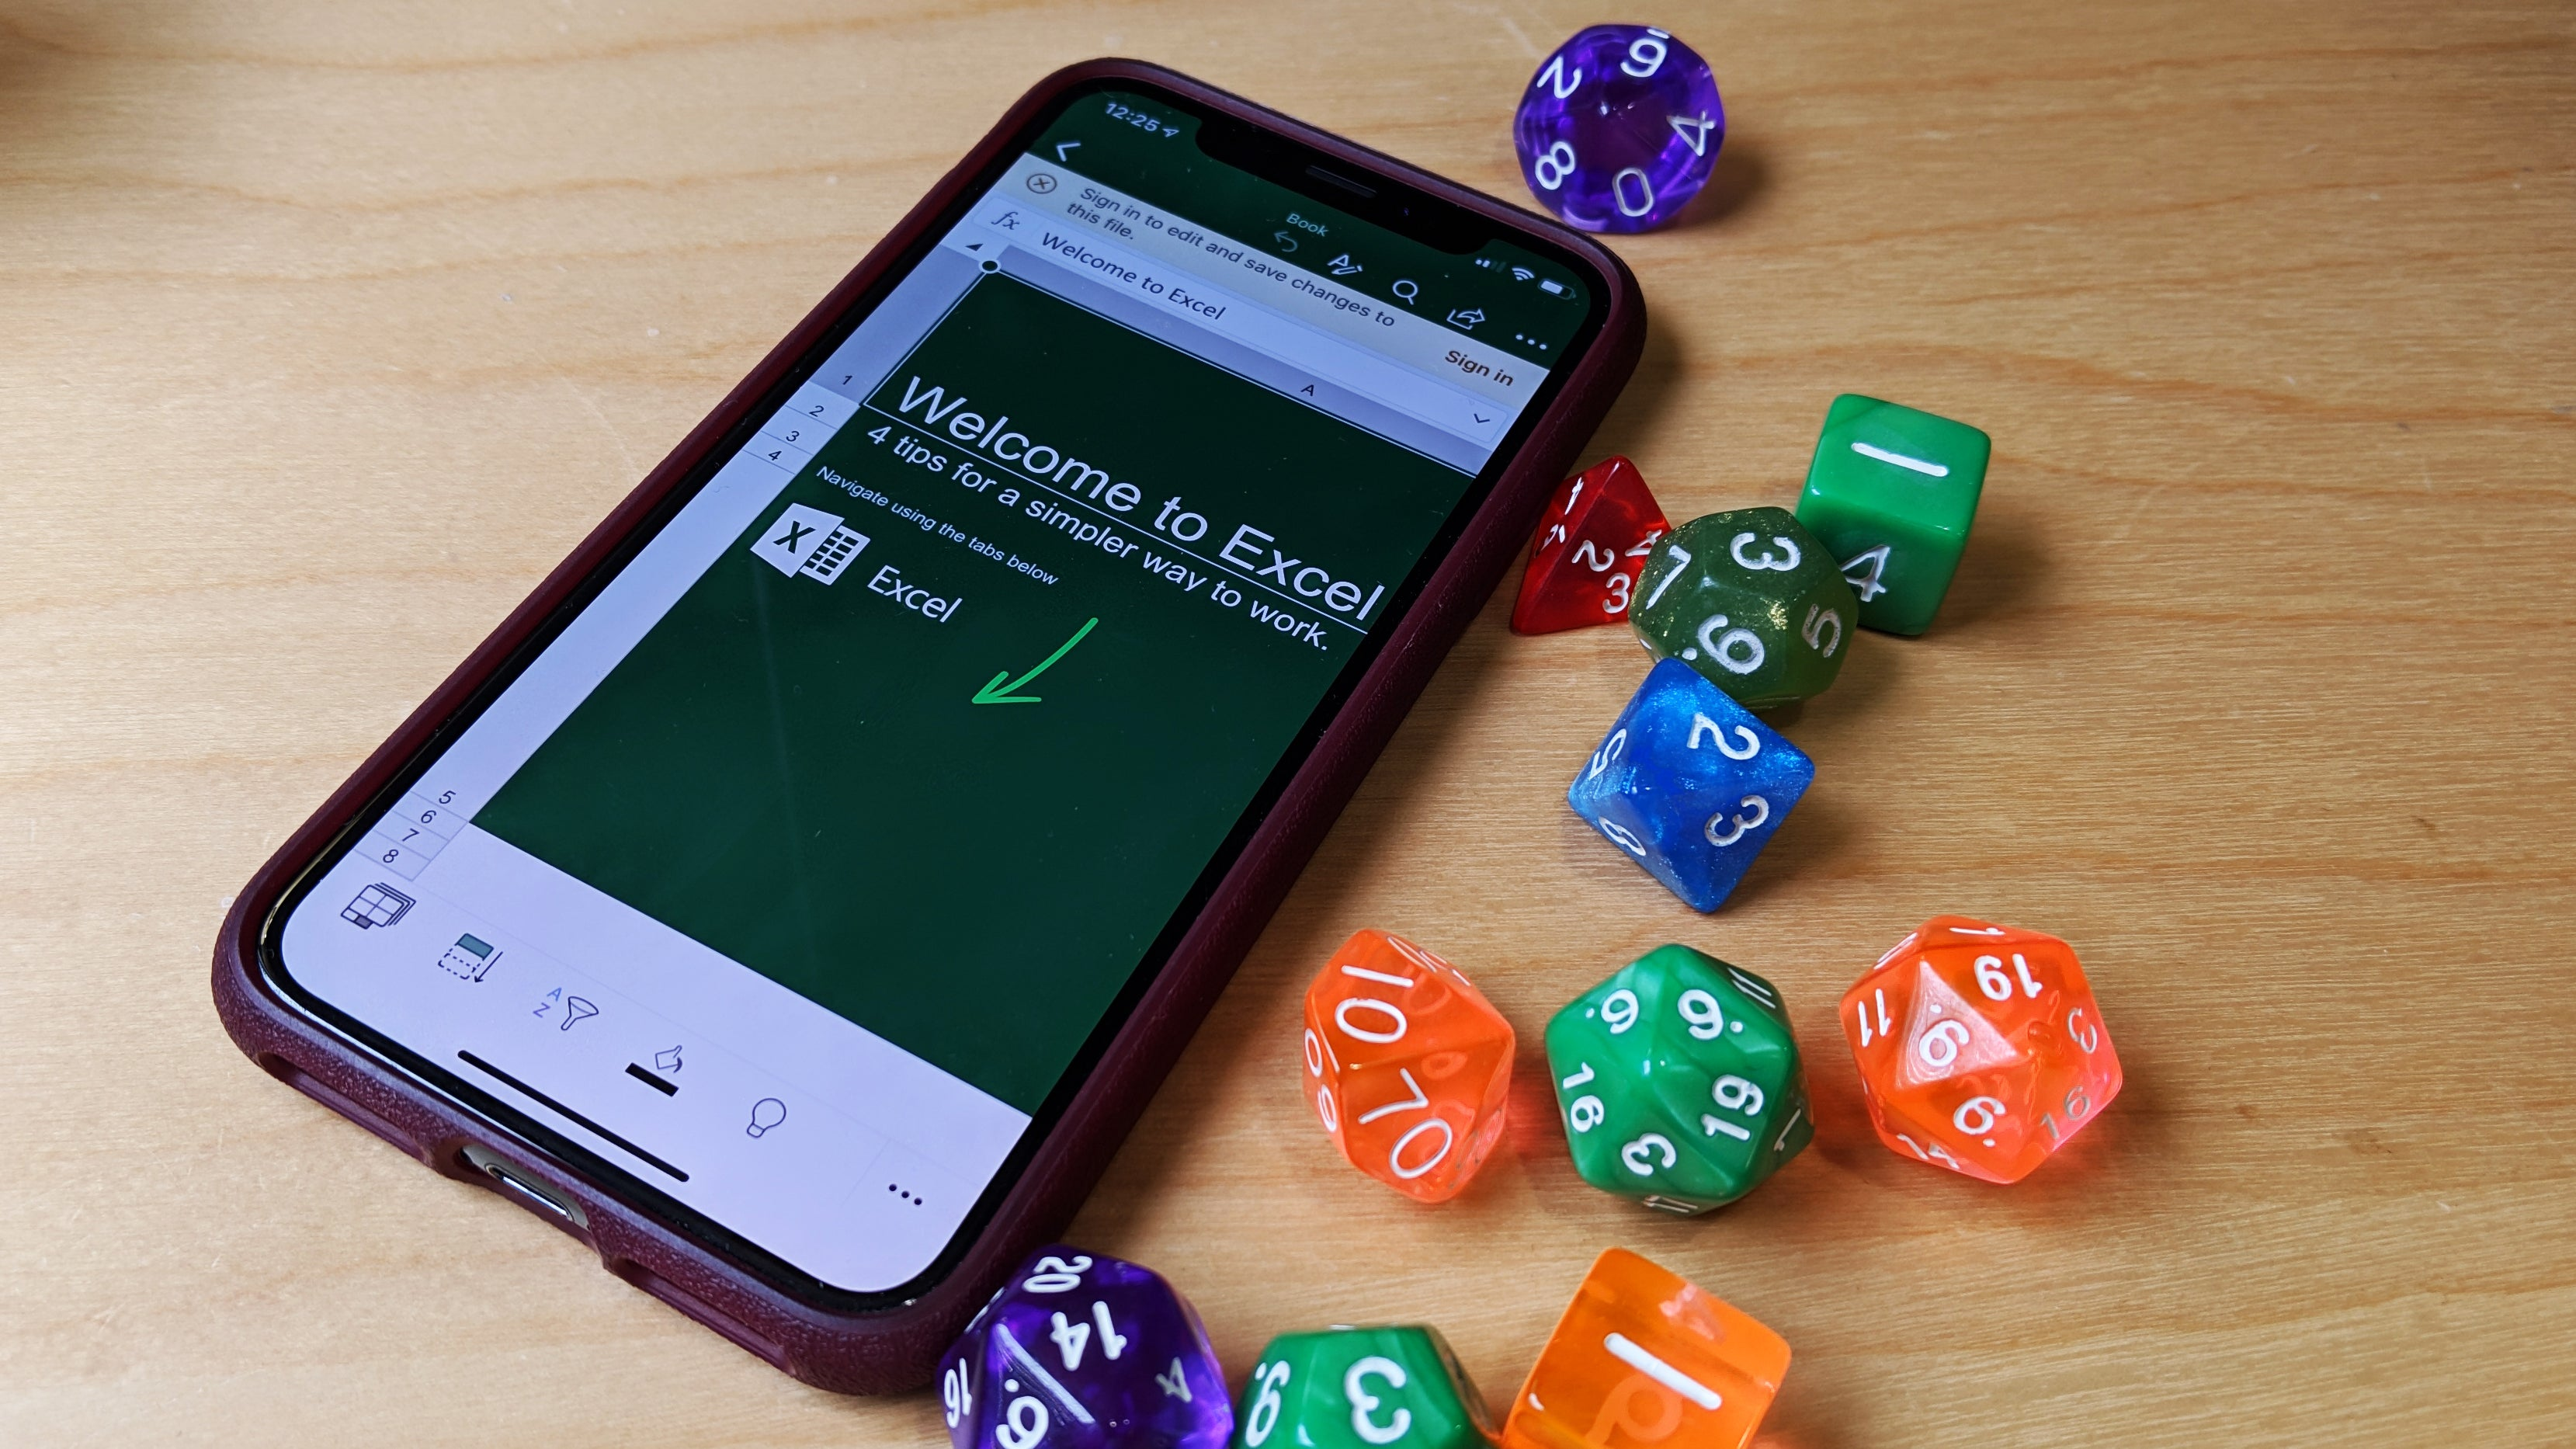 Excel's New 'Insert Data From Picture' Tool Works Pretty Well With Dungeons & Dragons